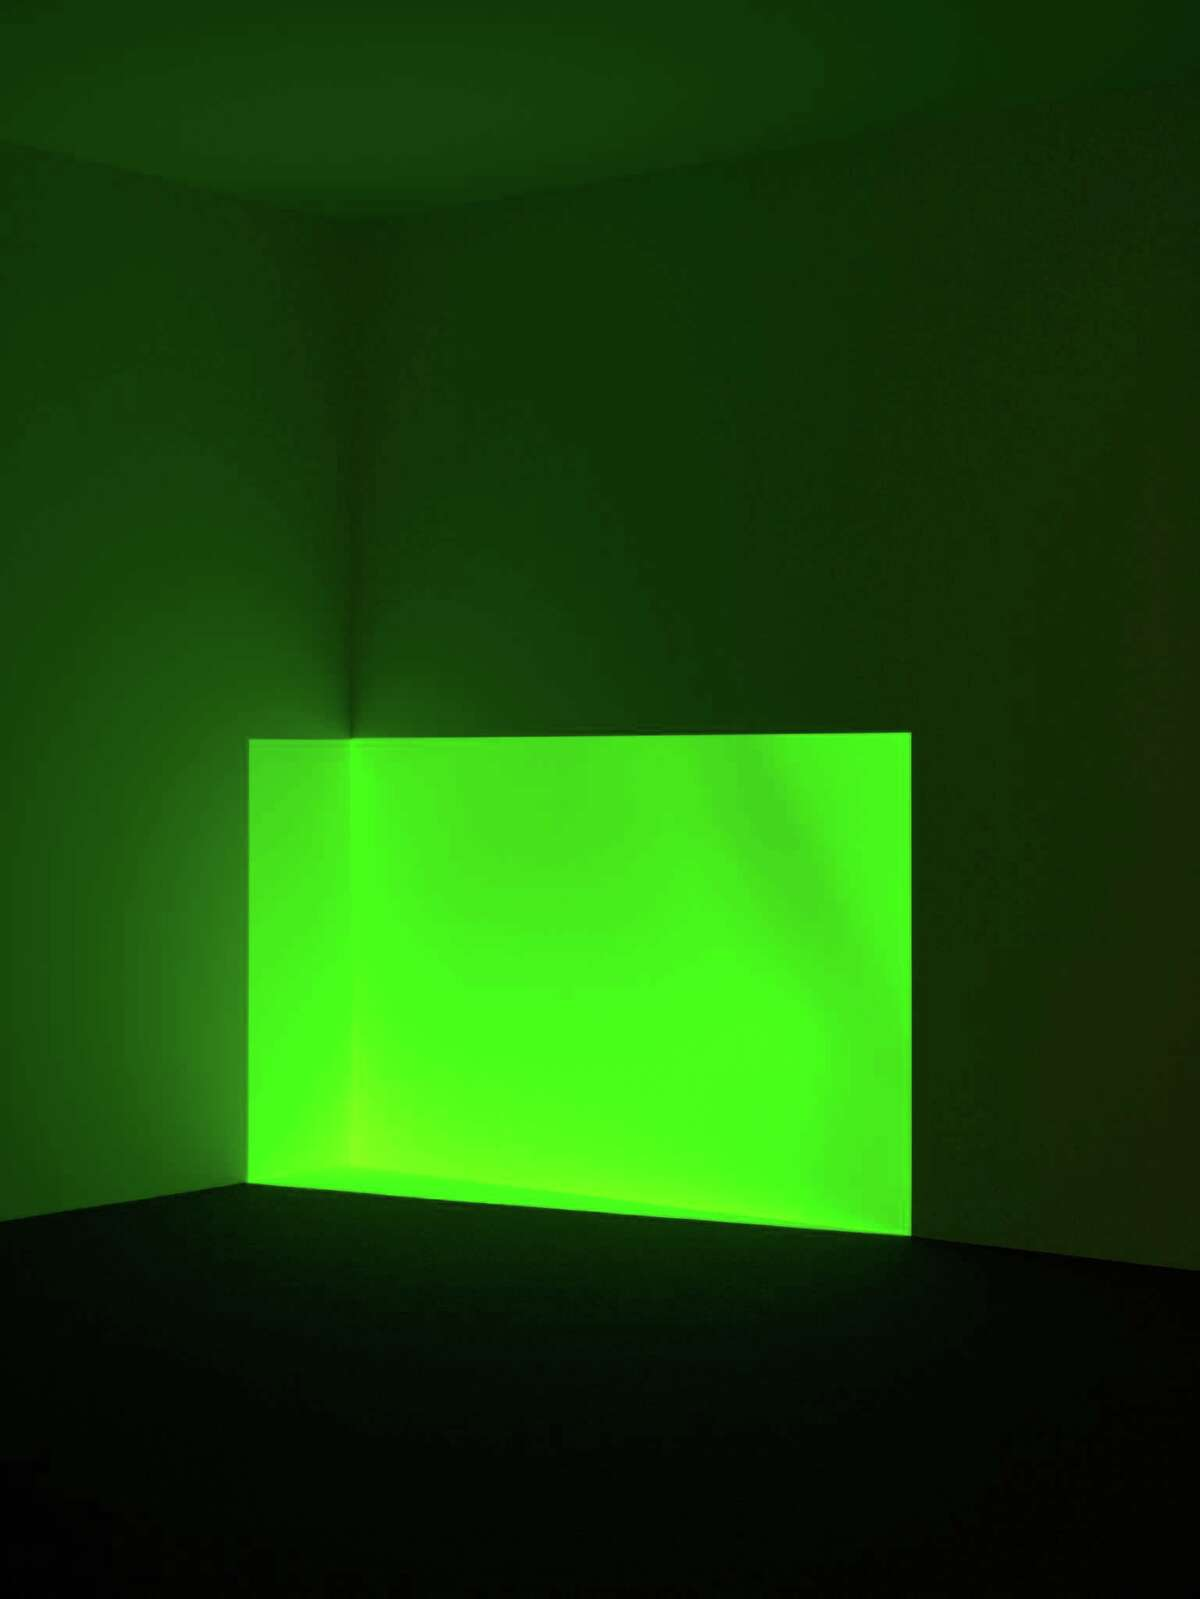 """James Turrell's """"Acro, Green"""" is a light projection designed in 1968. It's among the works by the legendary artist owned by the Museum of Fine Arts, Houston and on view in the exhibit """"James Turrell: The Light Inside."""""""